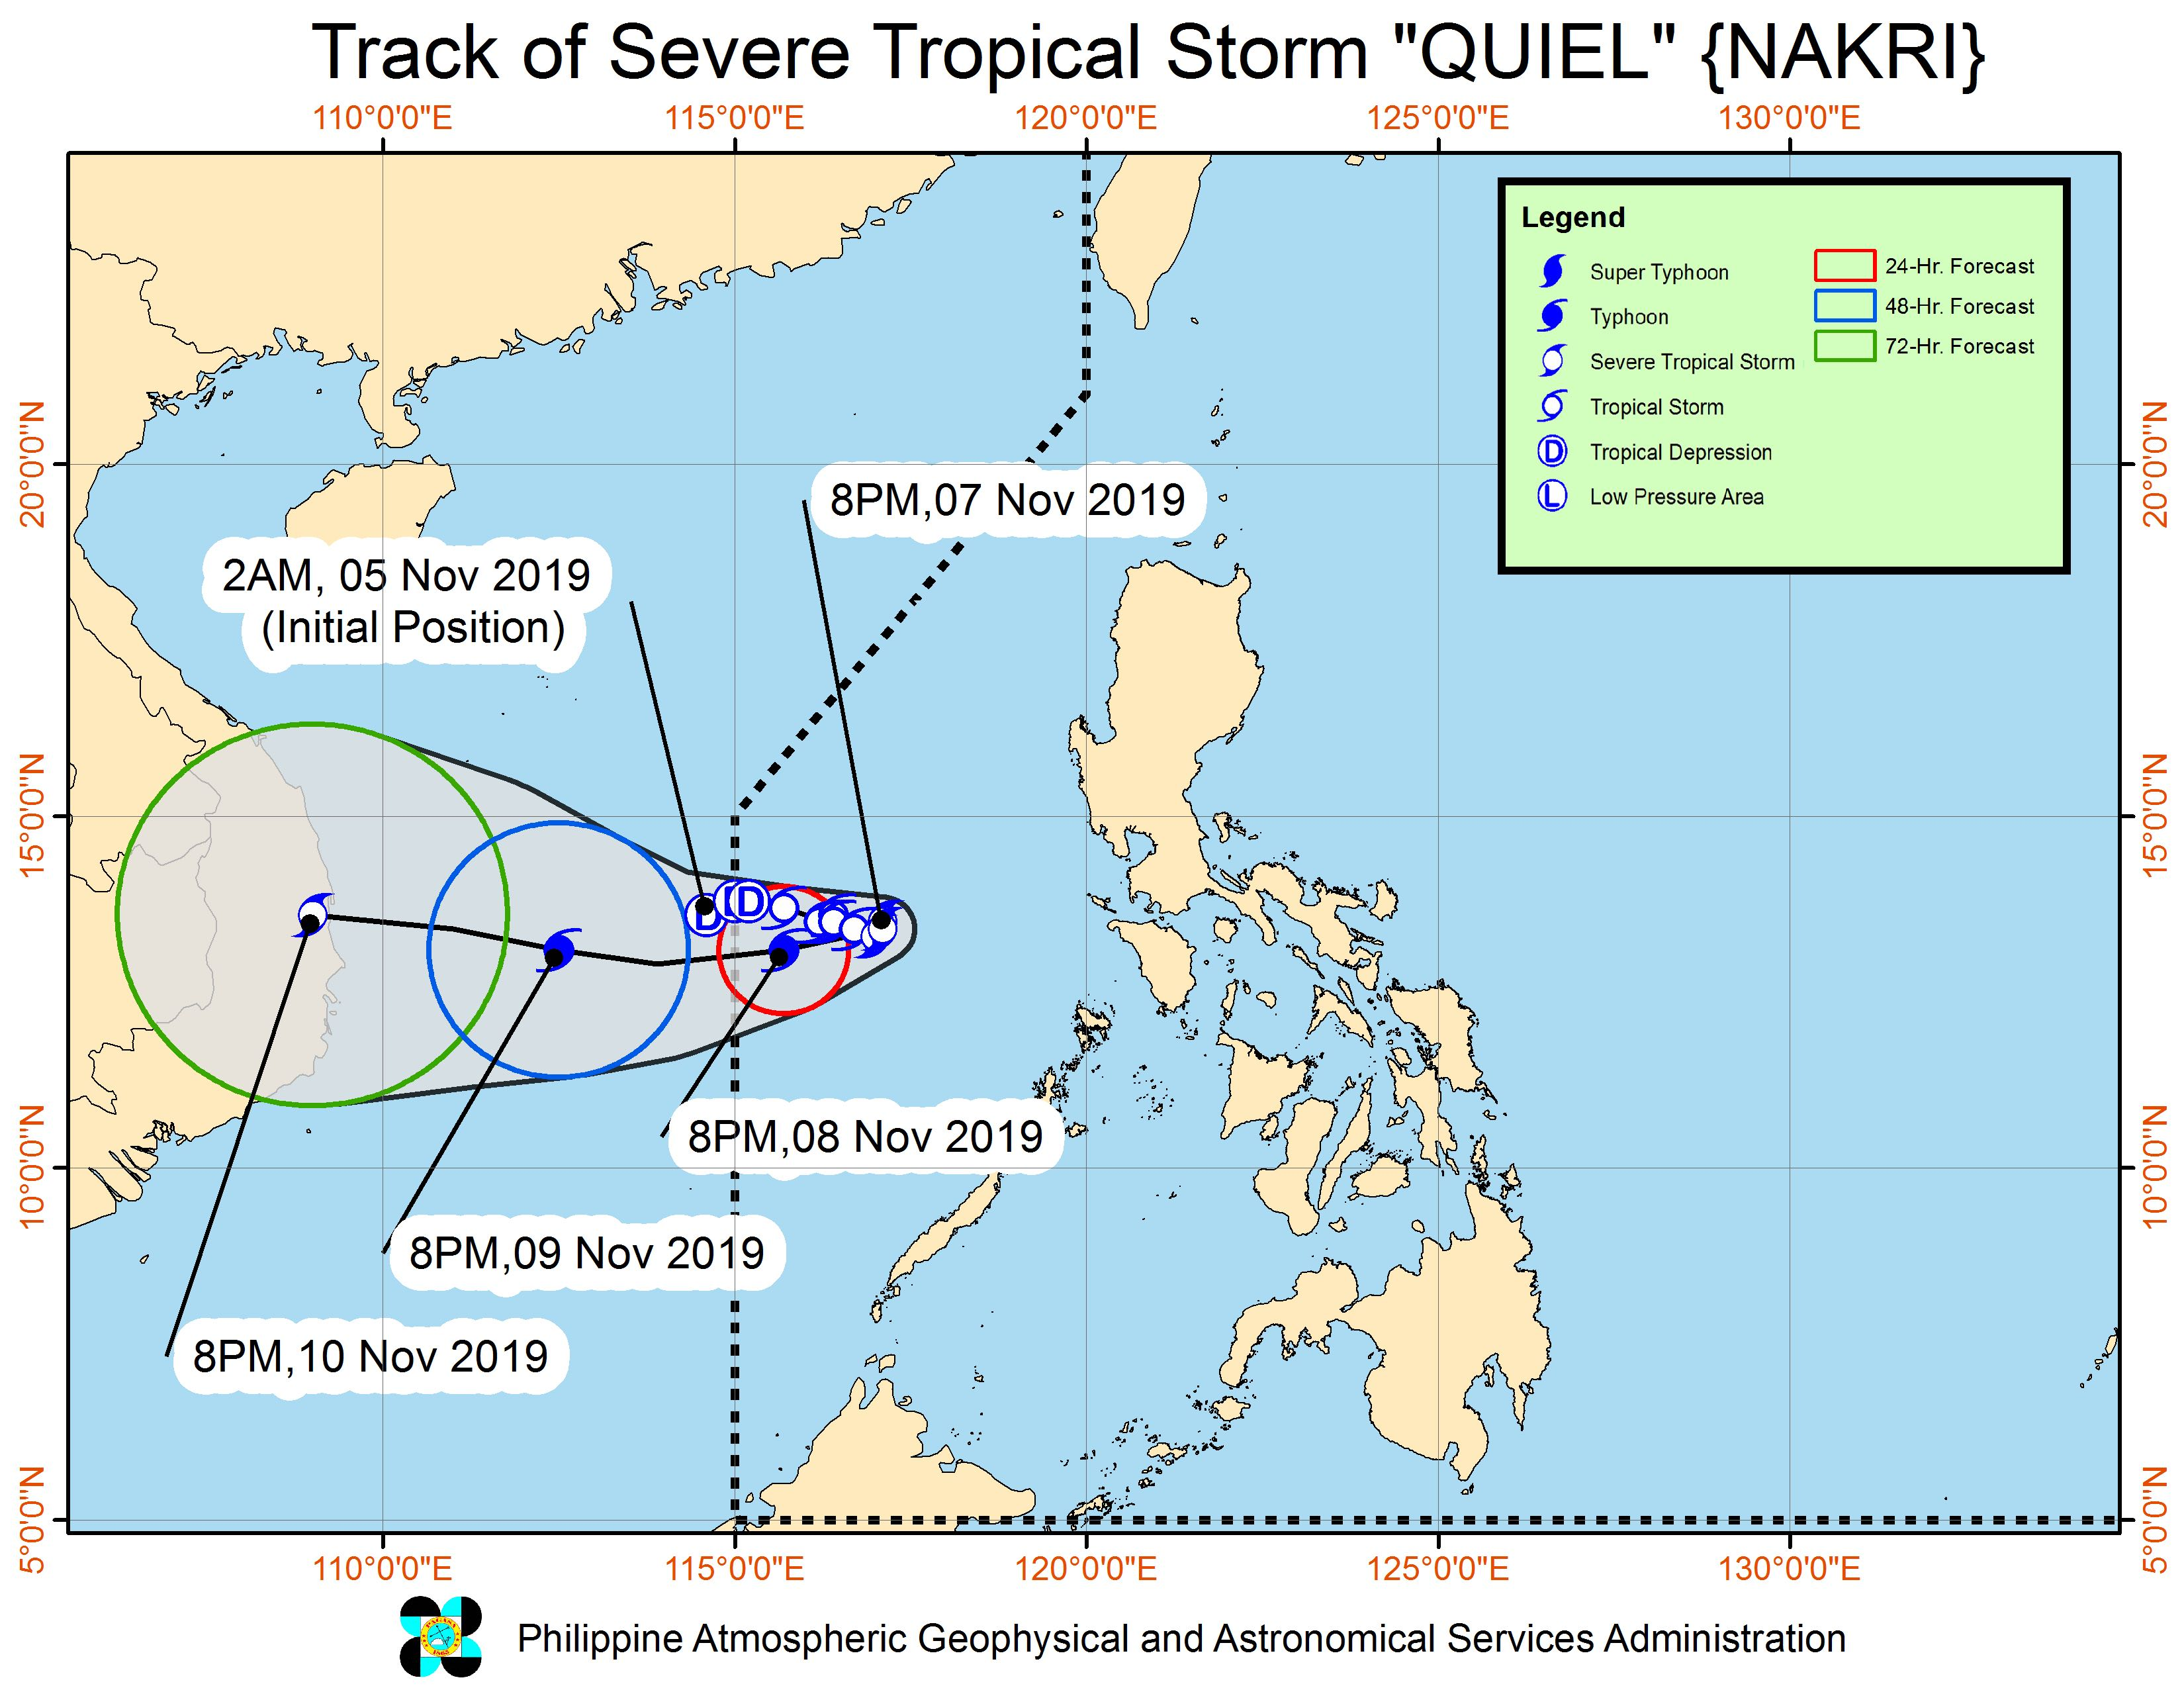 Forecast track of Severe Tropical Storm Quiel (Nakri) as of November 7, 2019, 11 pm. Image from PAGASA